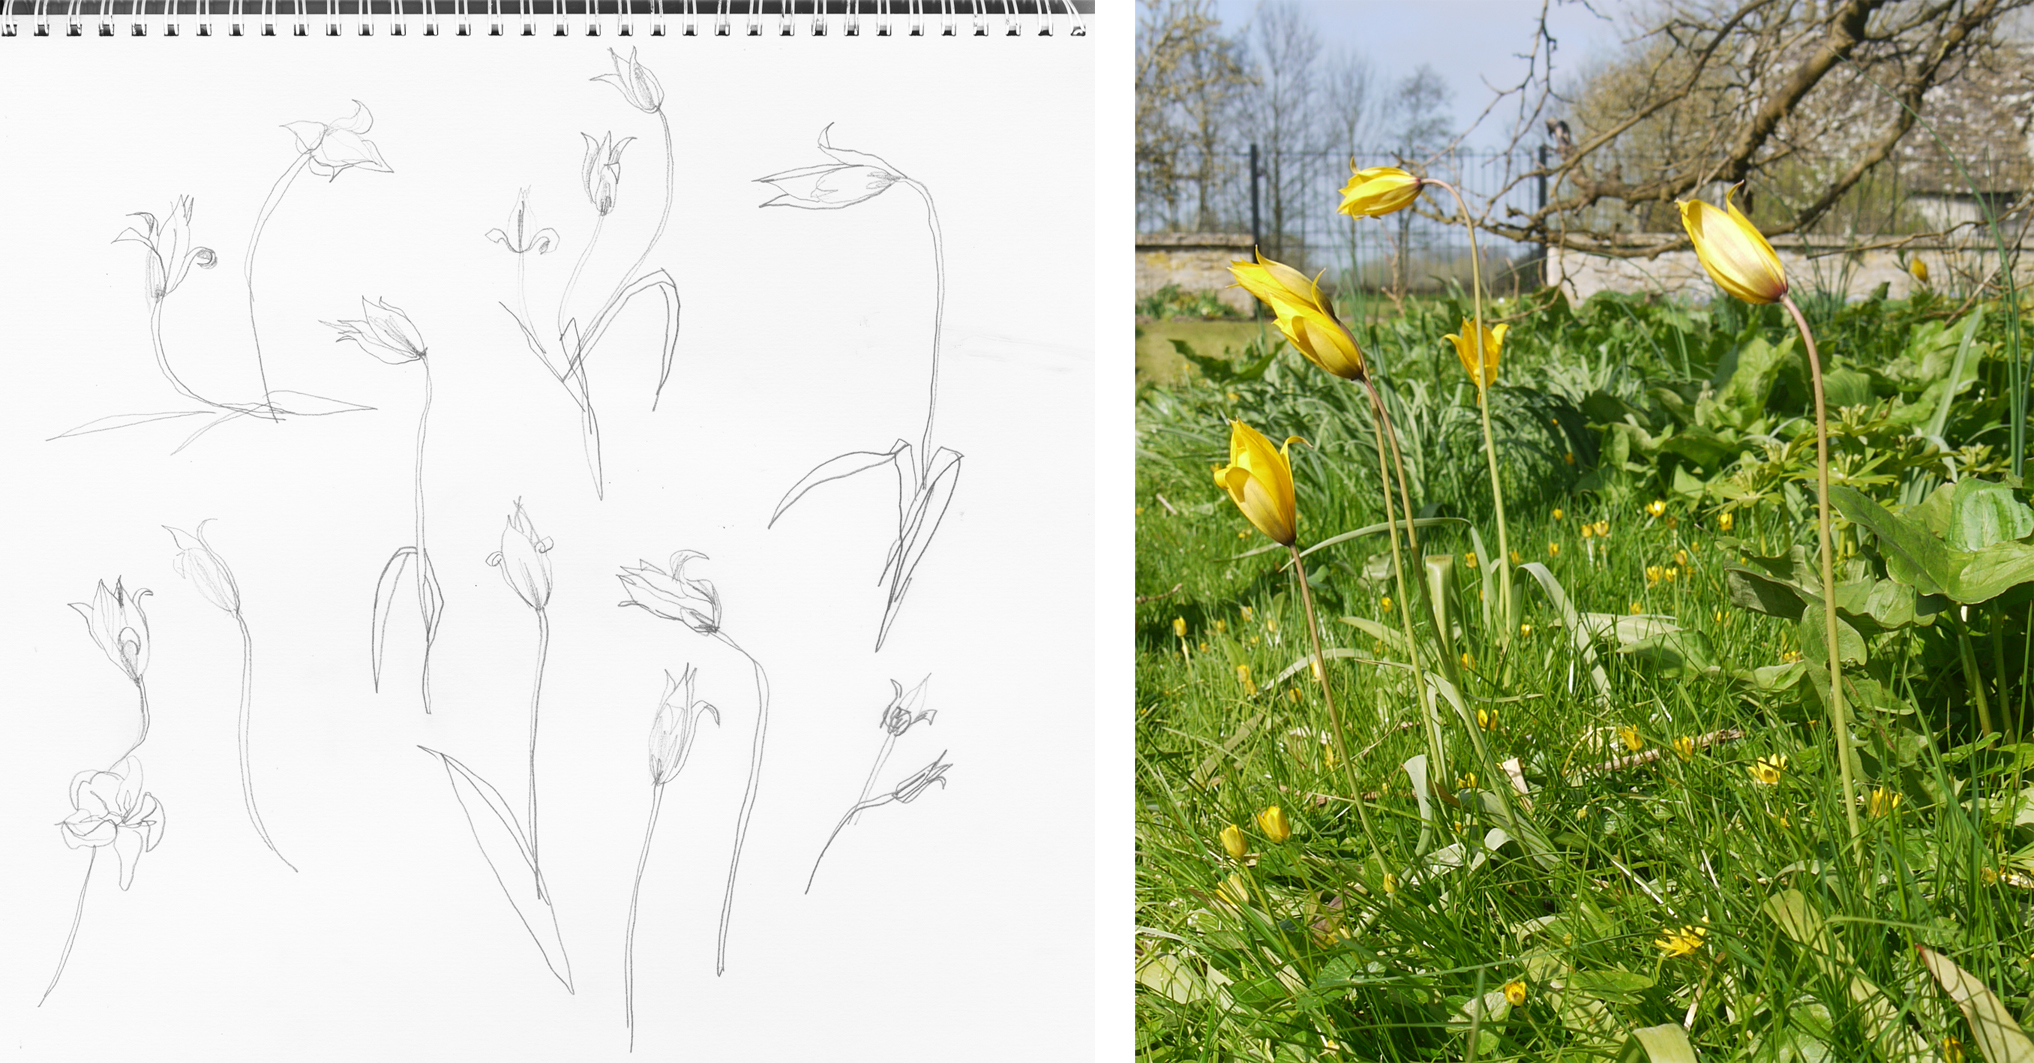 Today's tulip drawings and photographs under the mulberry tree behind Kelmscott Manor